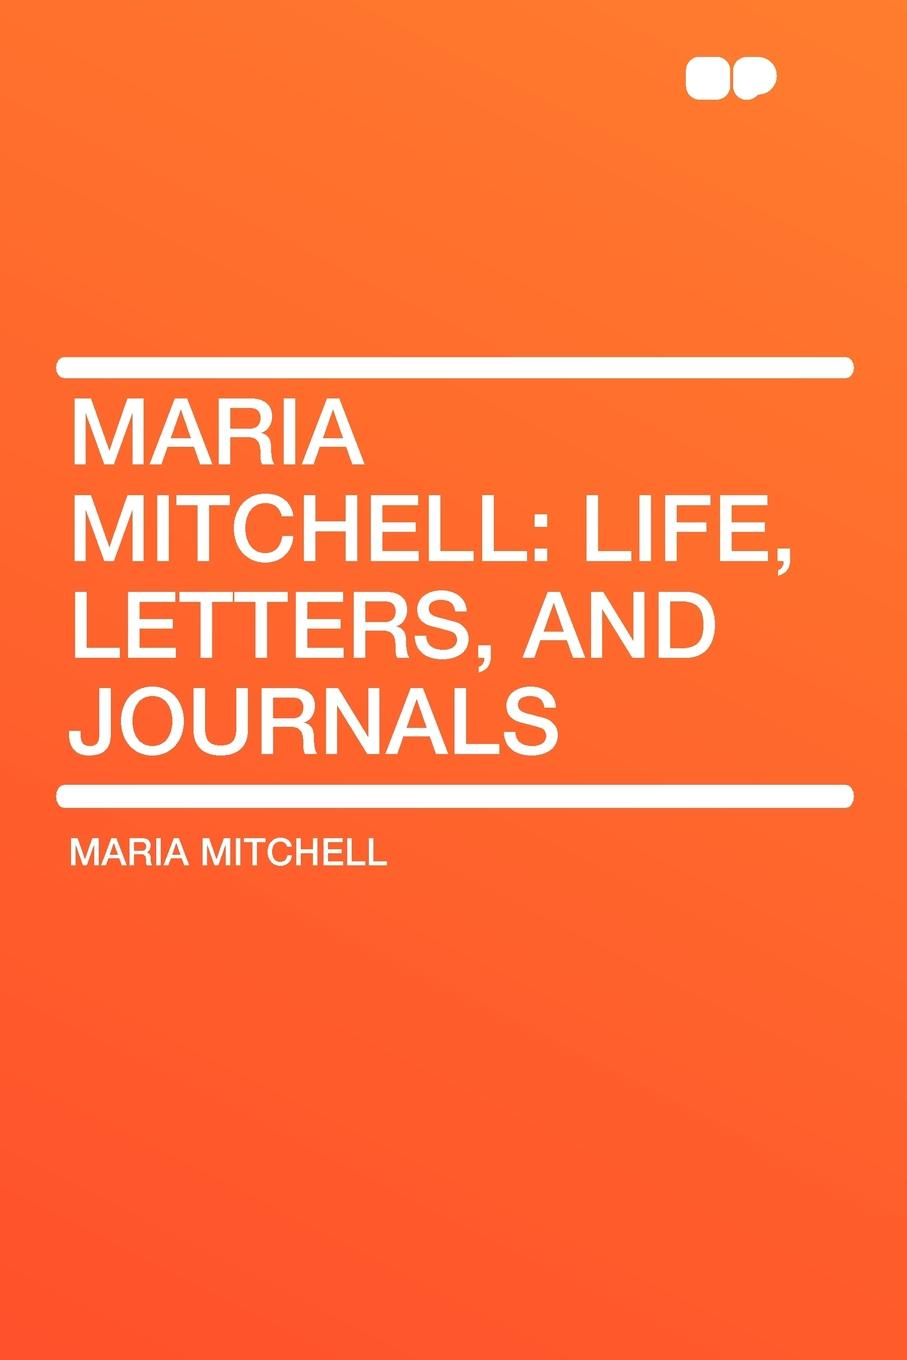 Maria Mitchell Mitchell. Life, Letters, and Journals